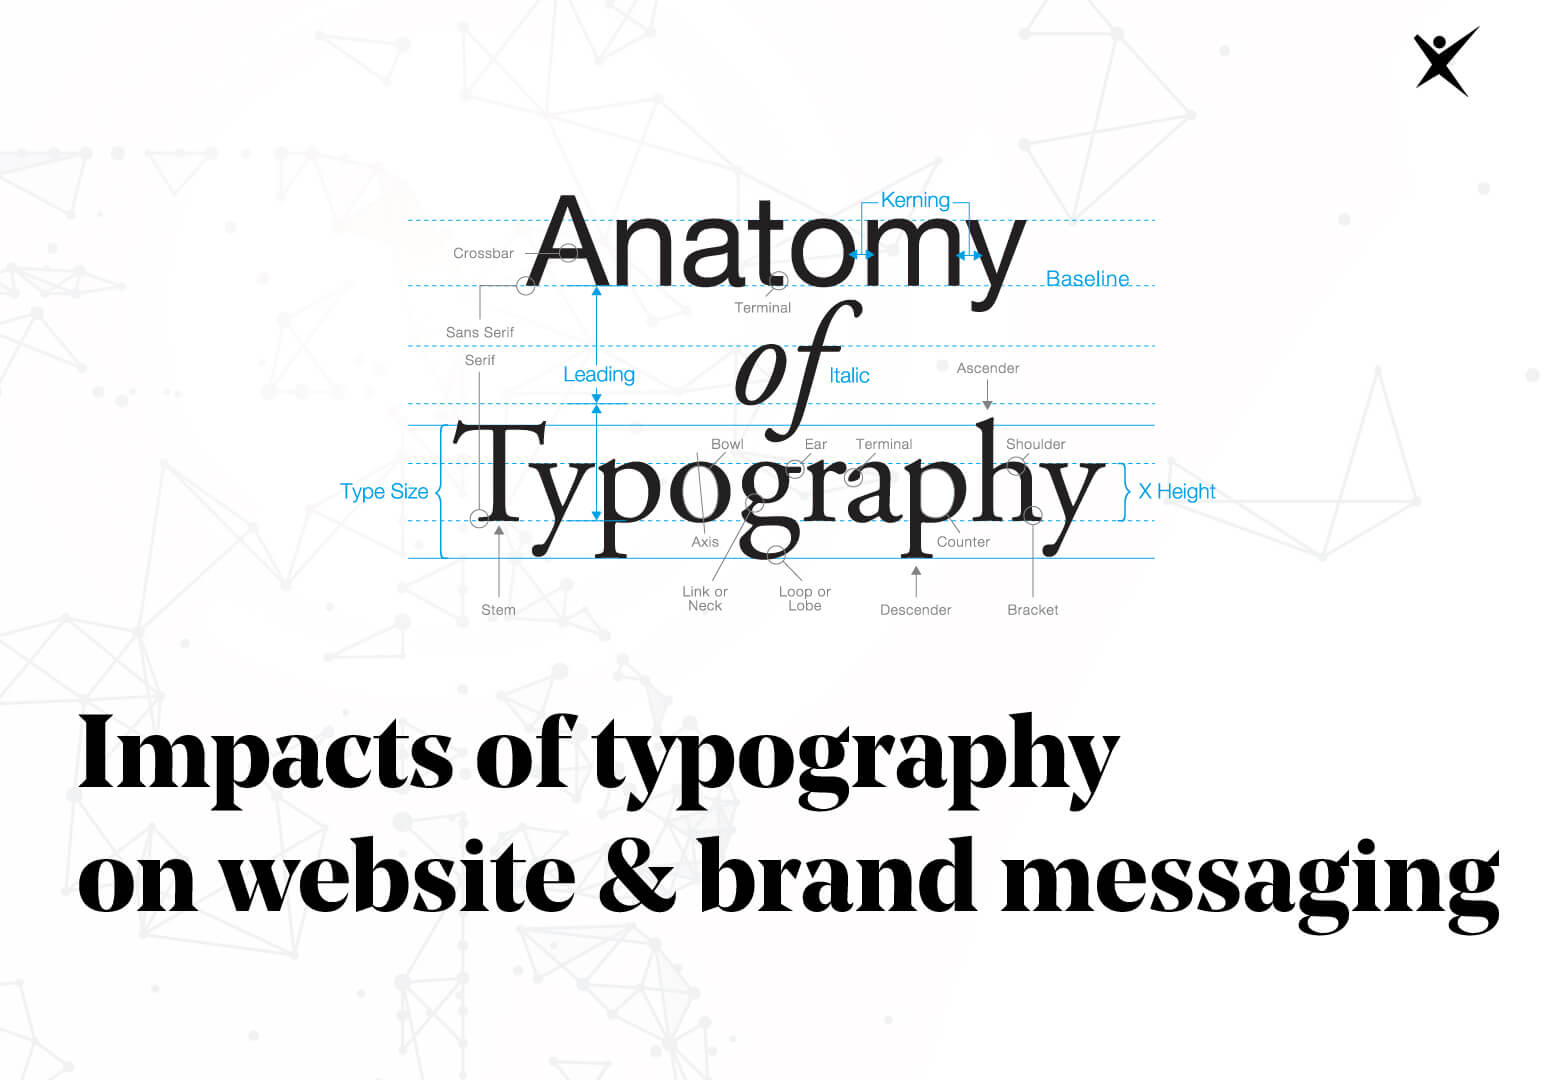 Impacts of Typography on Website and Brand Messaging